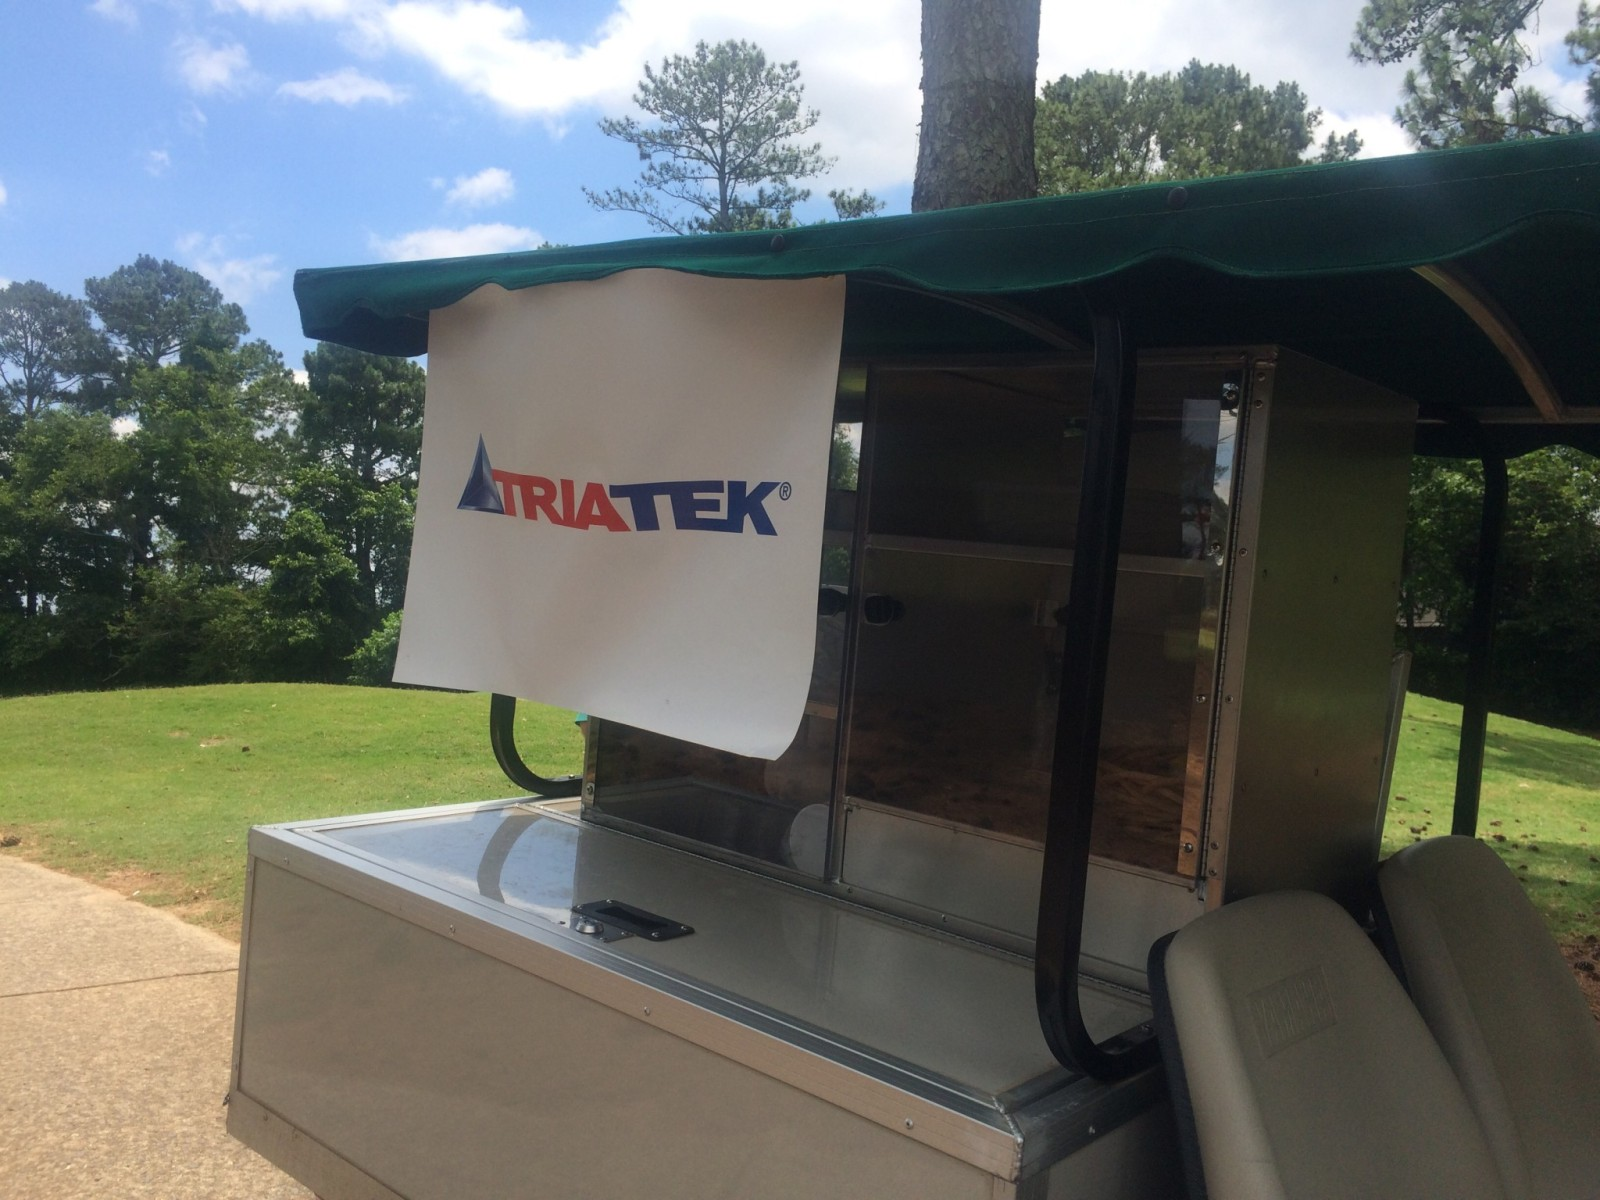 Triatek beer cart